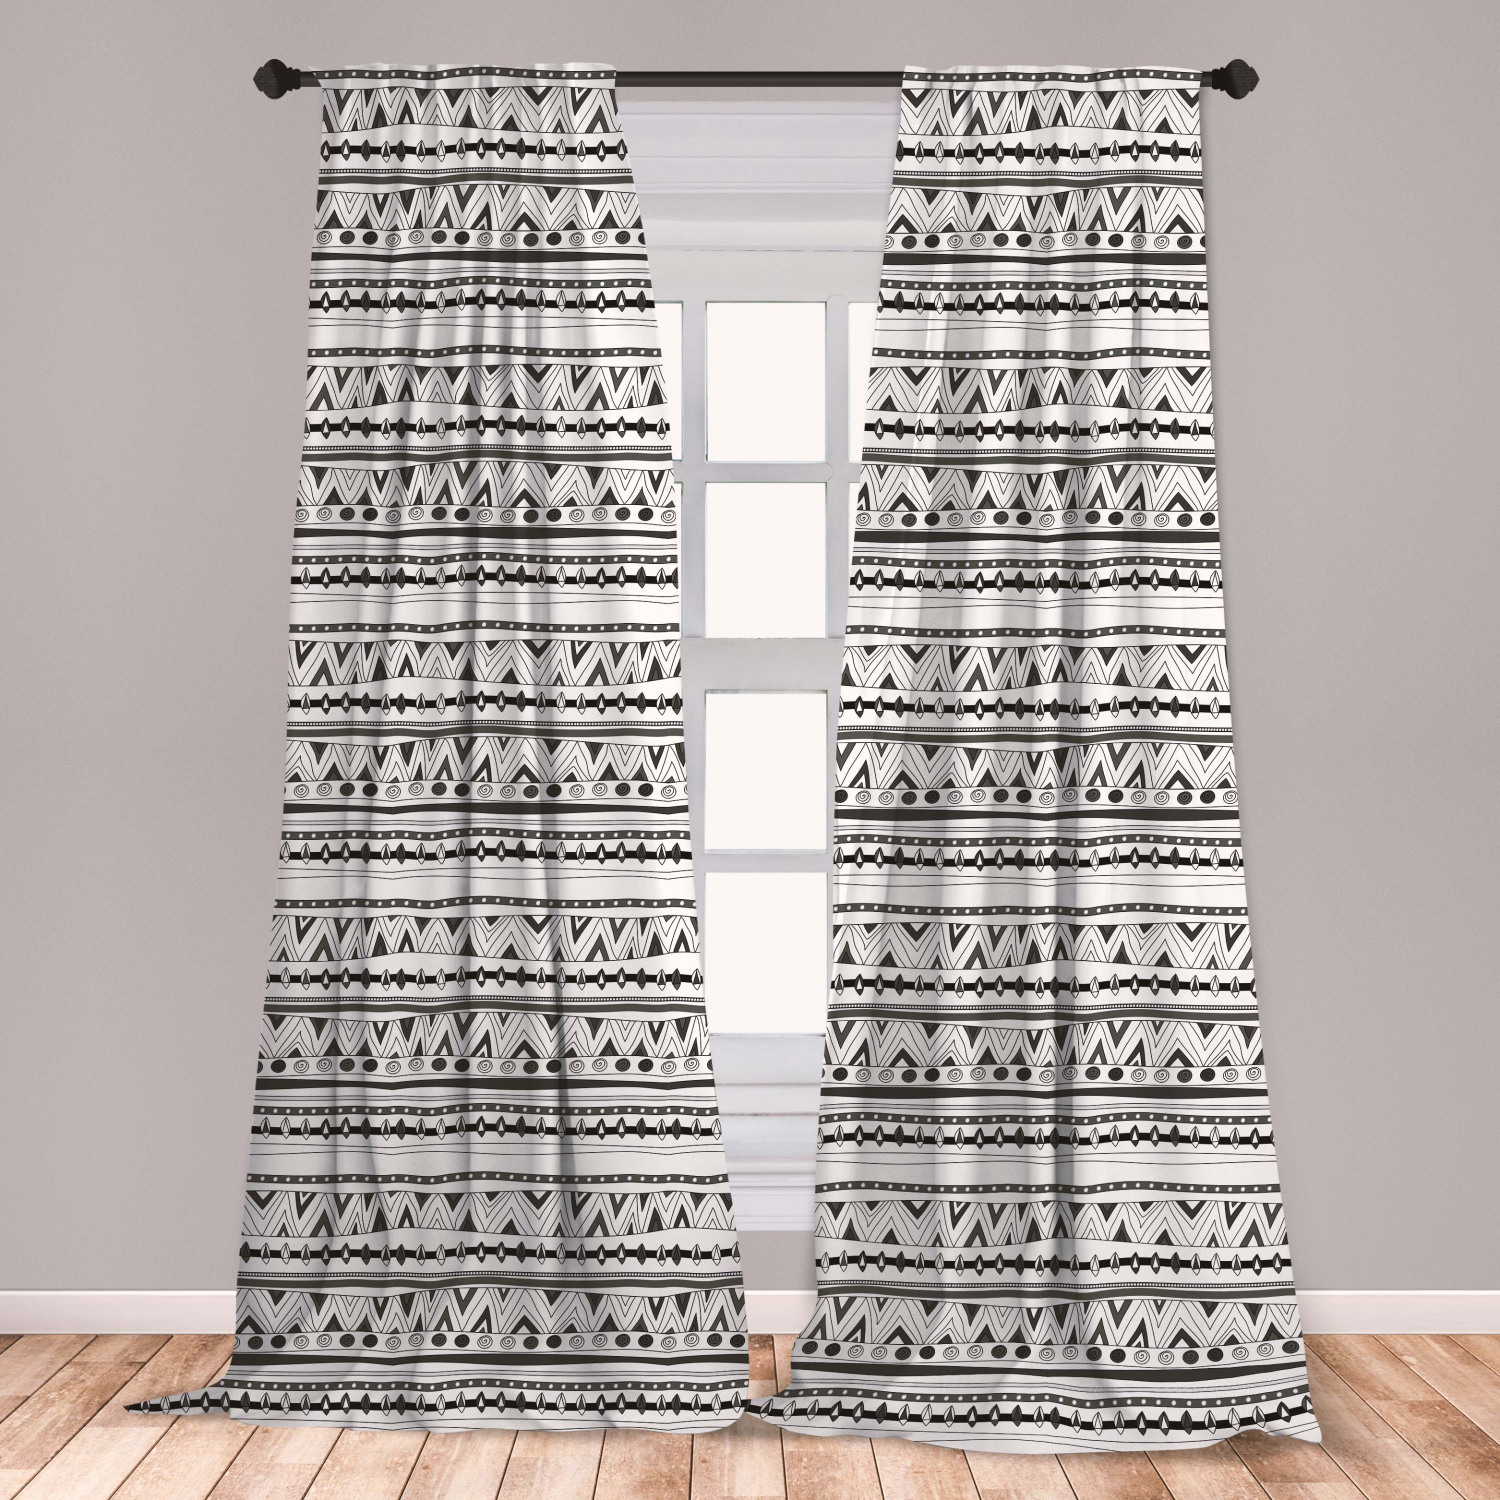 Tribal Curtains 2 Panels Set Primitive Aztec With Circles Triangles Tribal Folk Pattern Window Drapes For Living Room Bedroom Charcoal Grey White By Ambesonne Walmart Com Walmart Com